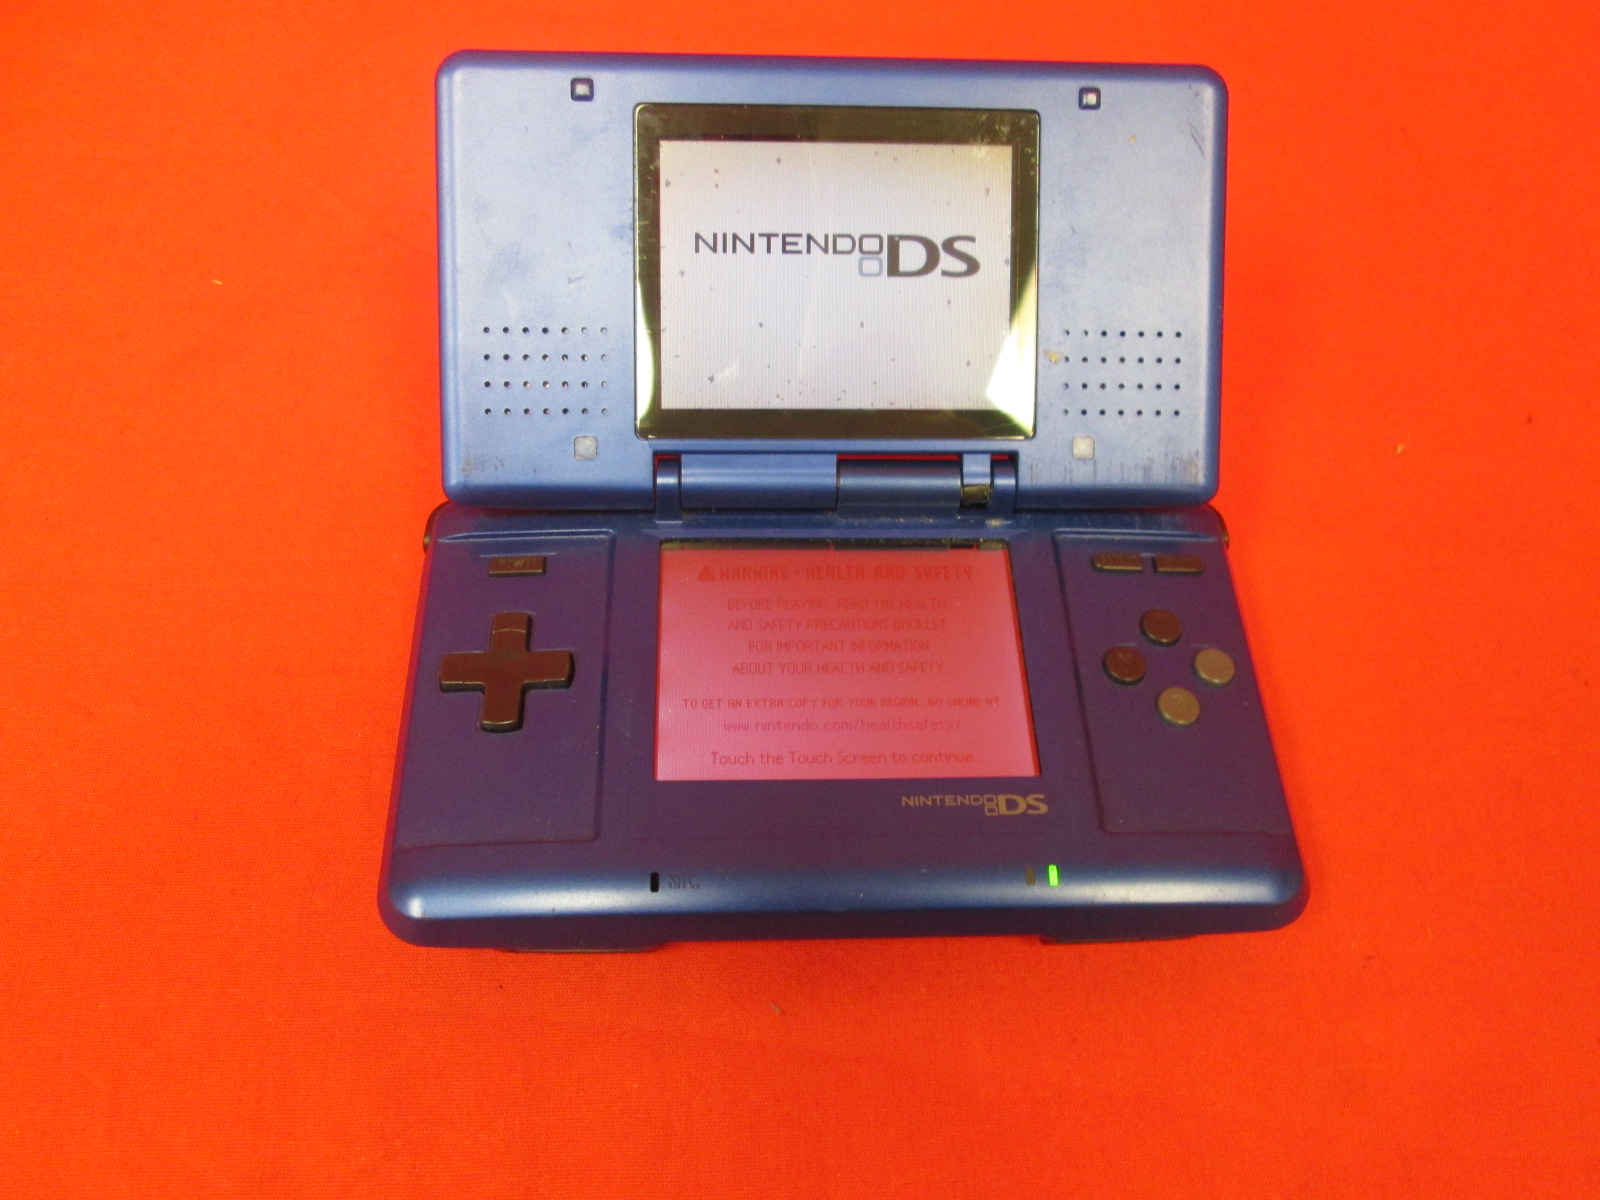 Nintendo DS Electric Blue Video Game System